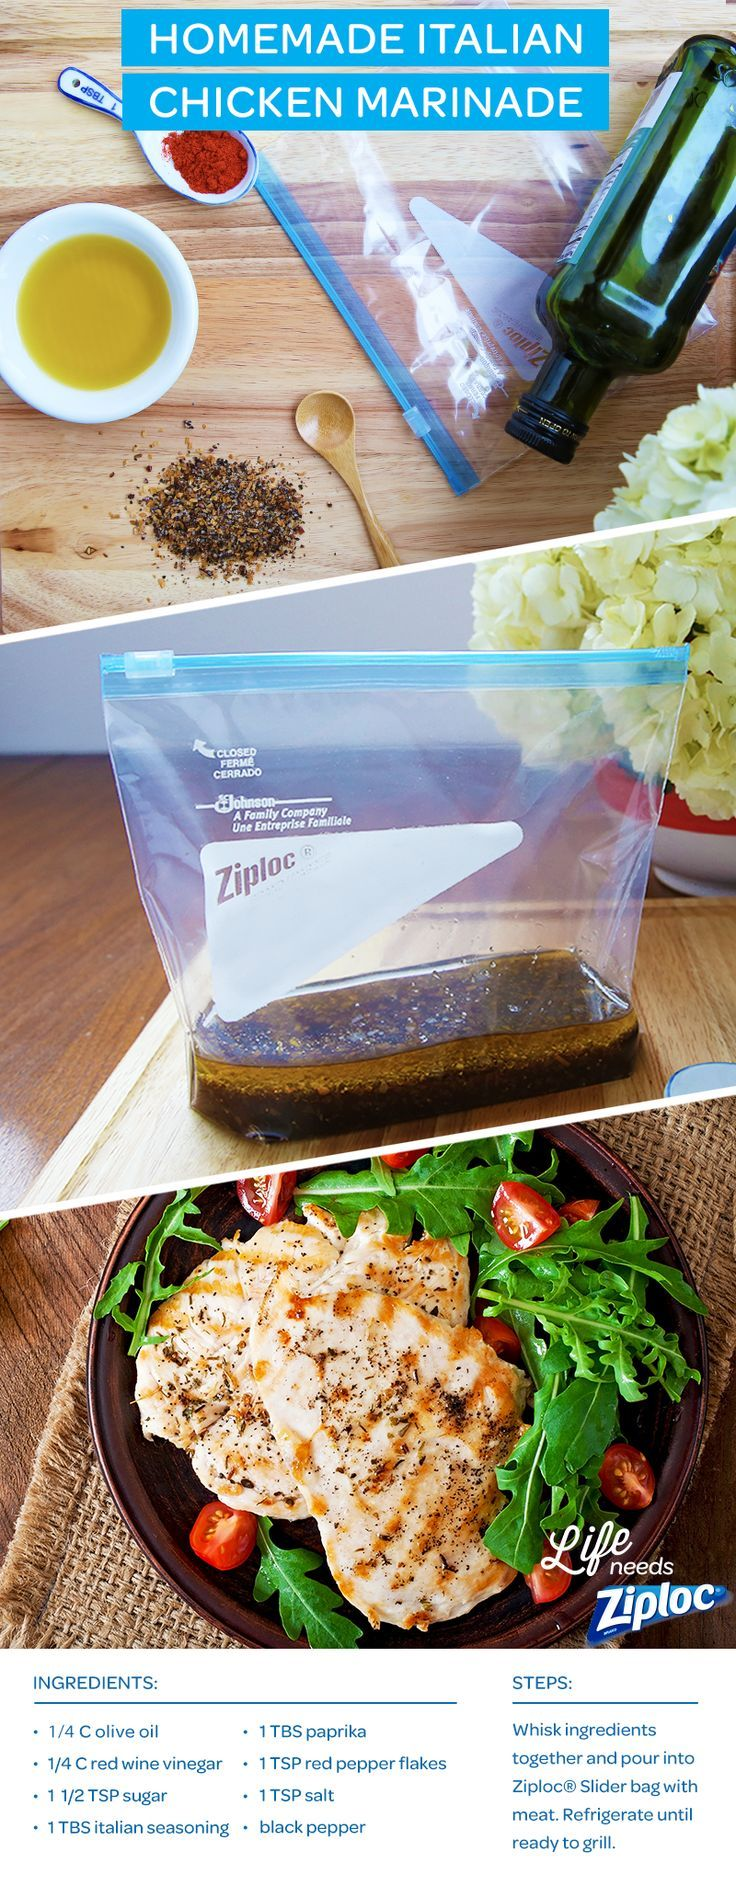 This homemade italian chicken marinade is a real money-saver (make it in bulk and store it in the fridge for all your springtime dinners). Just add all of the ingredients to a Ziploc® Slider bag for easy marinating.